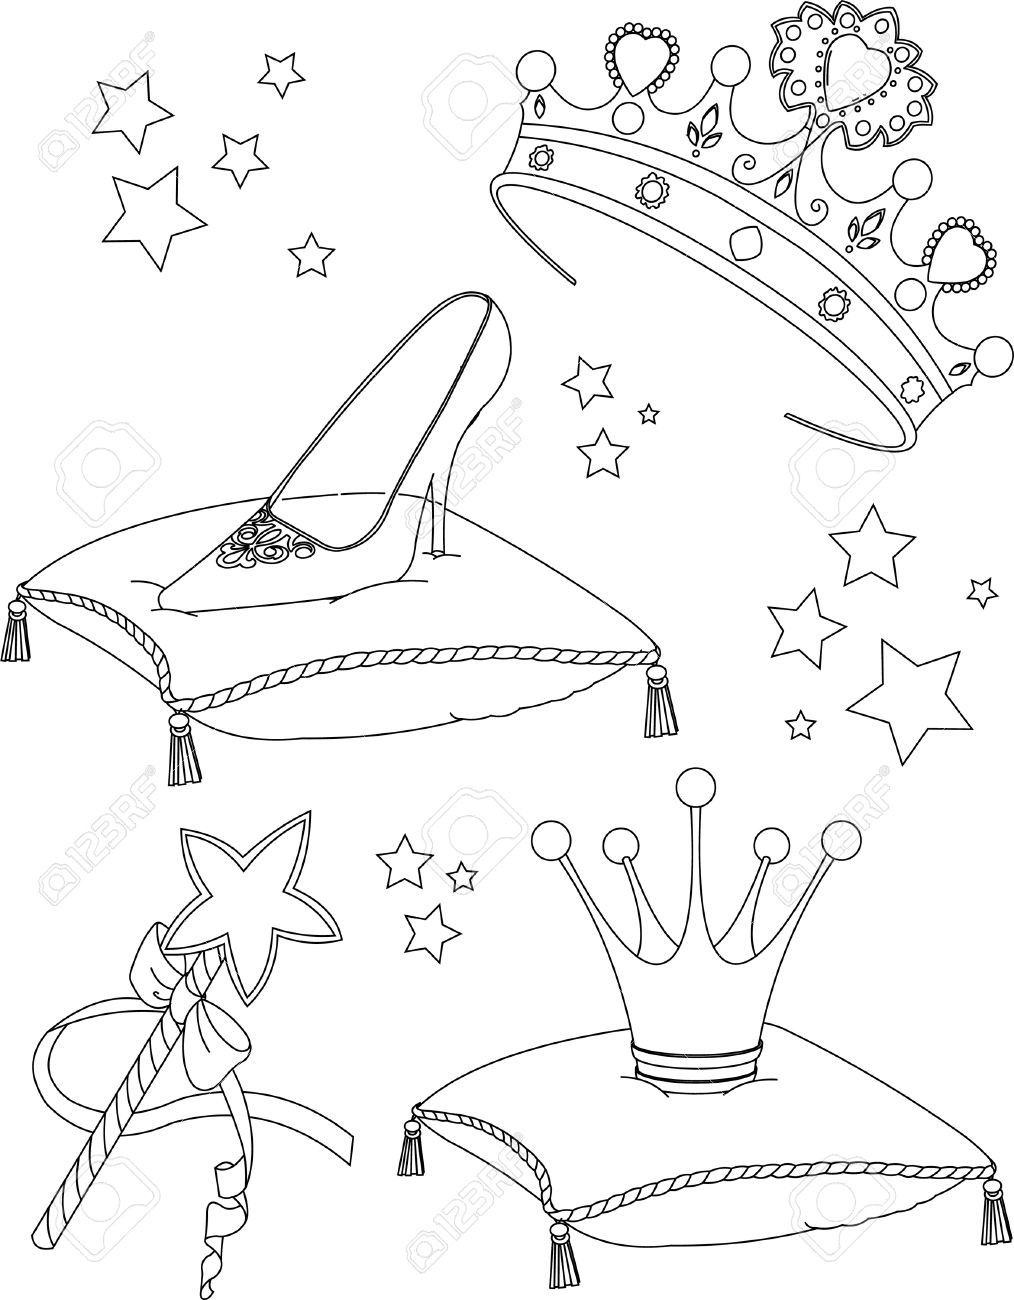 Princess Wand Coloring Page Through The Thousands Of Images On The Net Concerning Princess Wand Coloring Coloring Pages Cartoon Coloring Pages Princess Wands